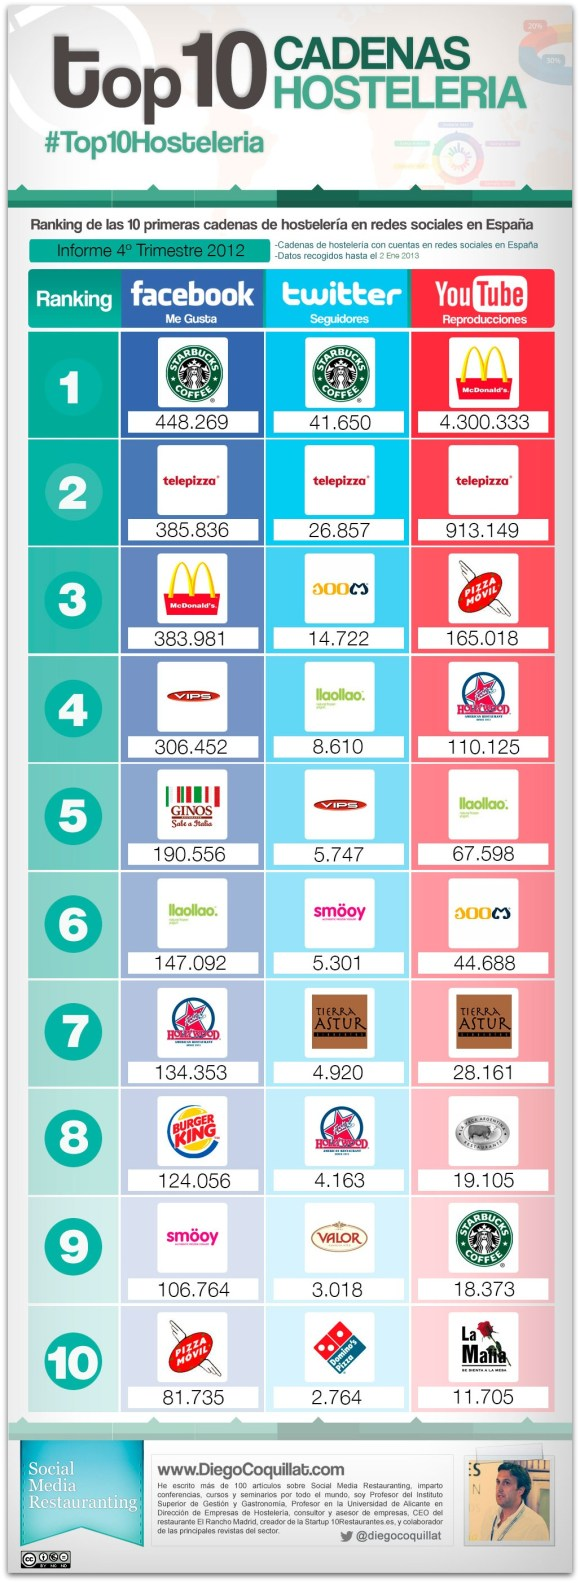 Ranking of 10 best hospitality chains in Spain 2012